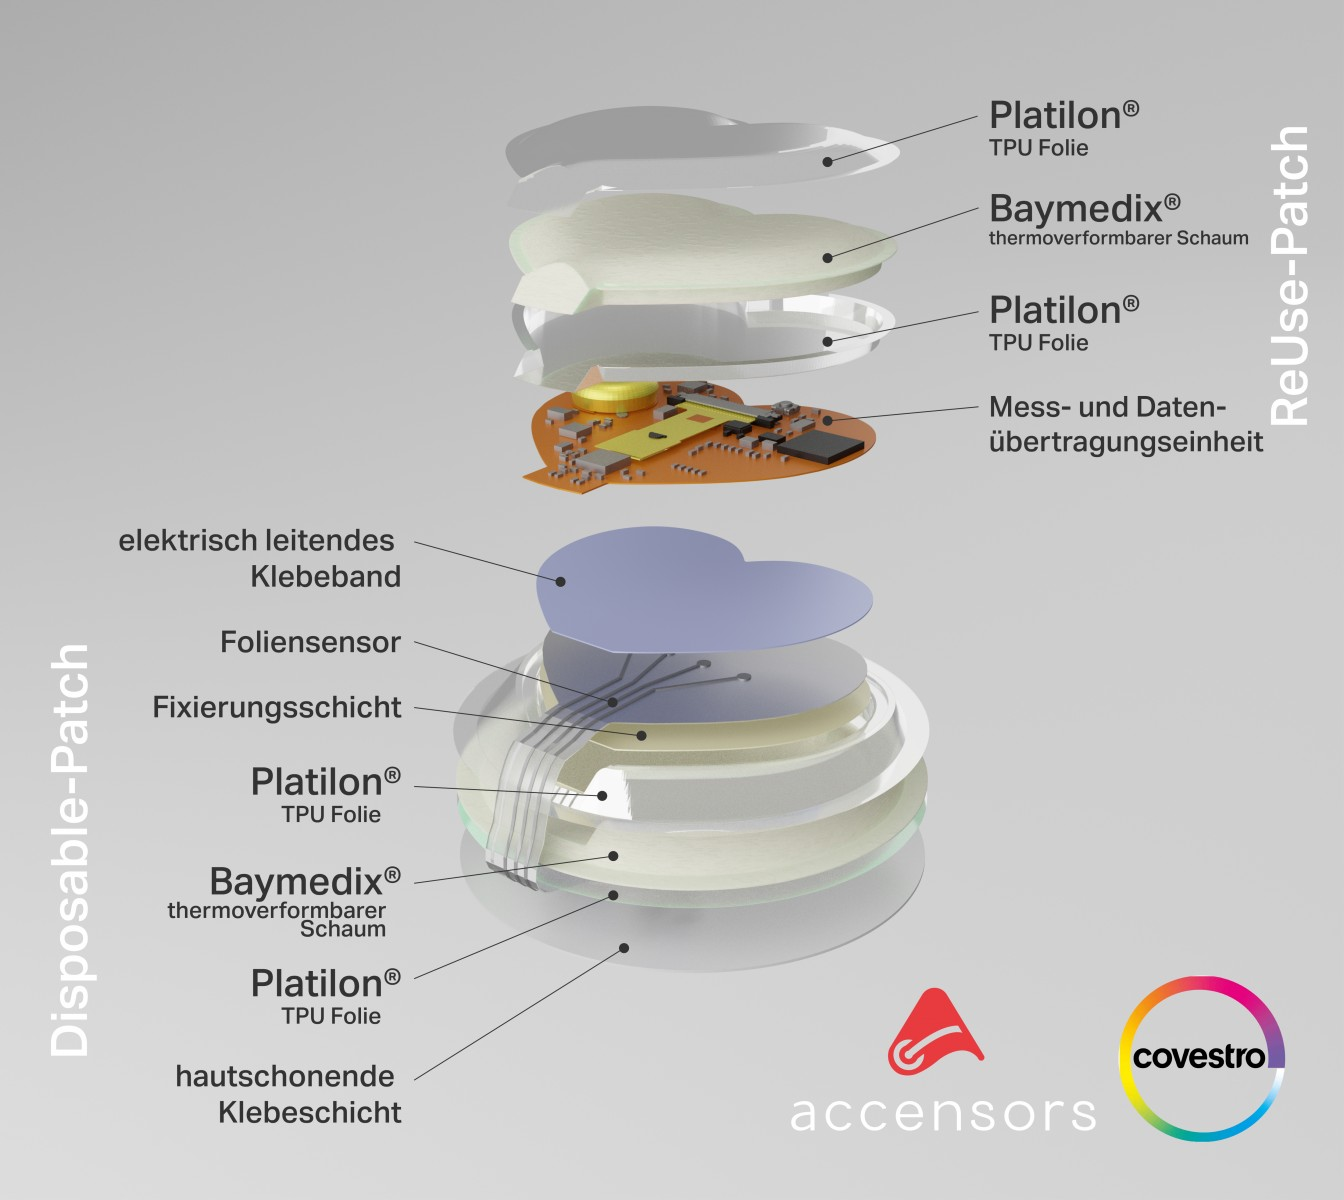 20210222_Medical-Wearable-Patch-Devices-Pic-DE